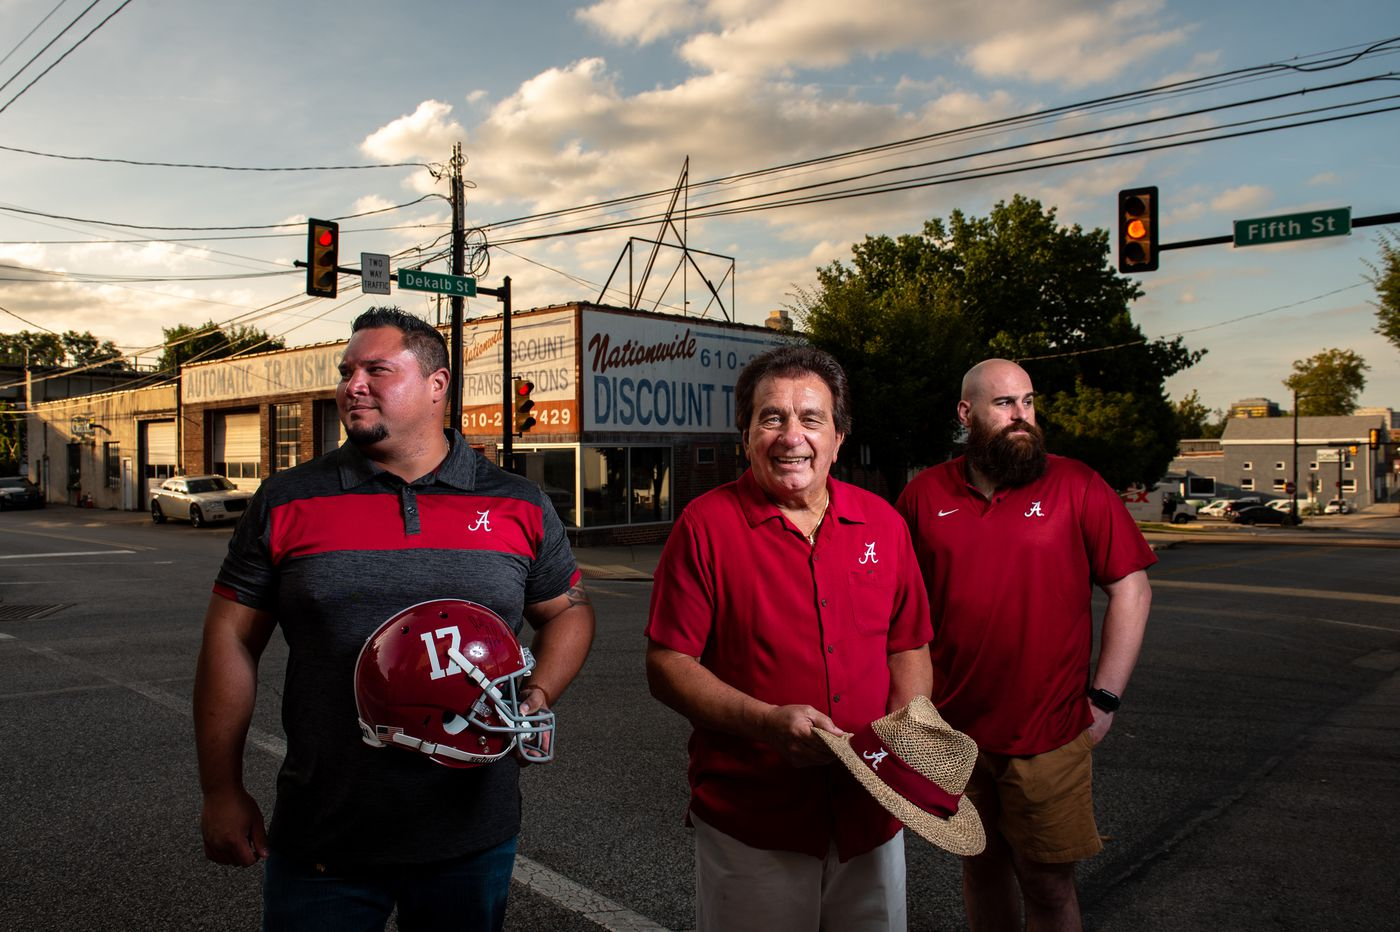 After 50 years, this Bridgeport club is still giving Alabama football - and others - a boost | Mike Sielski